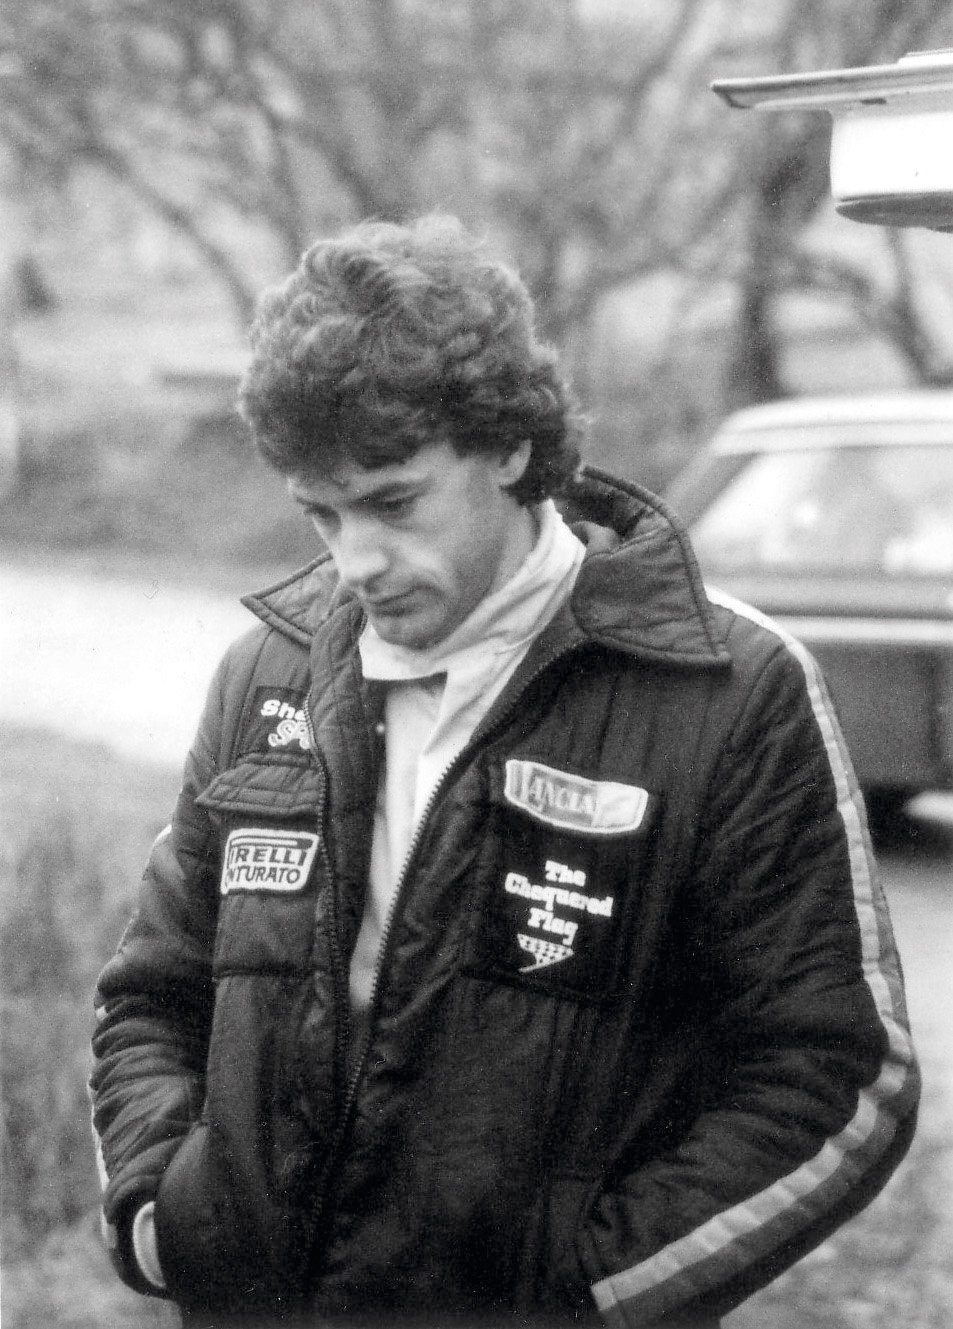 Tom Pryce on Forest of the Dean Rally